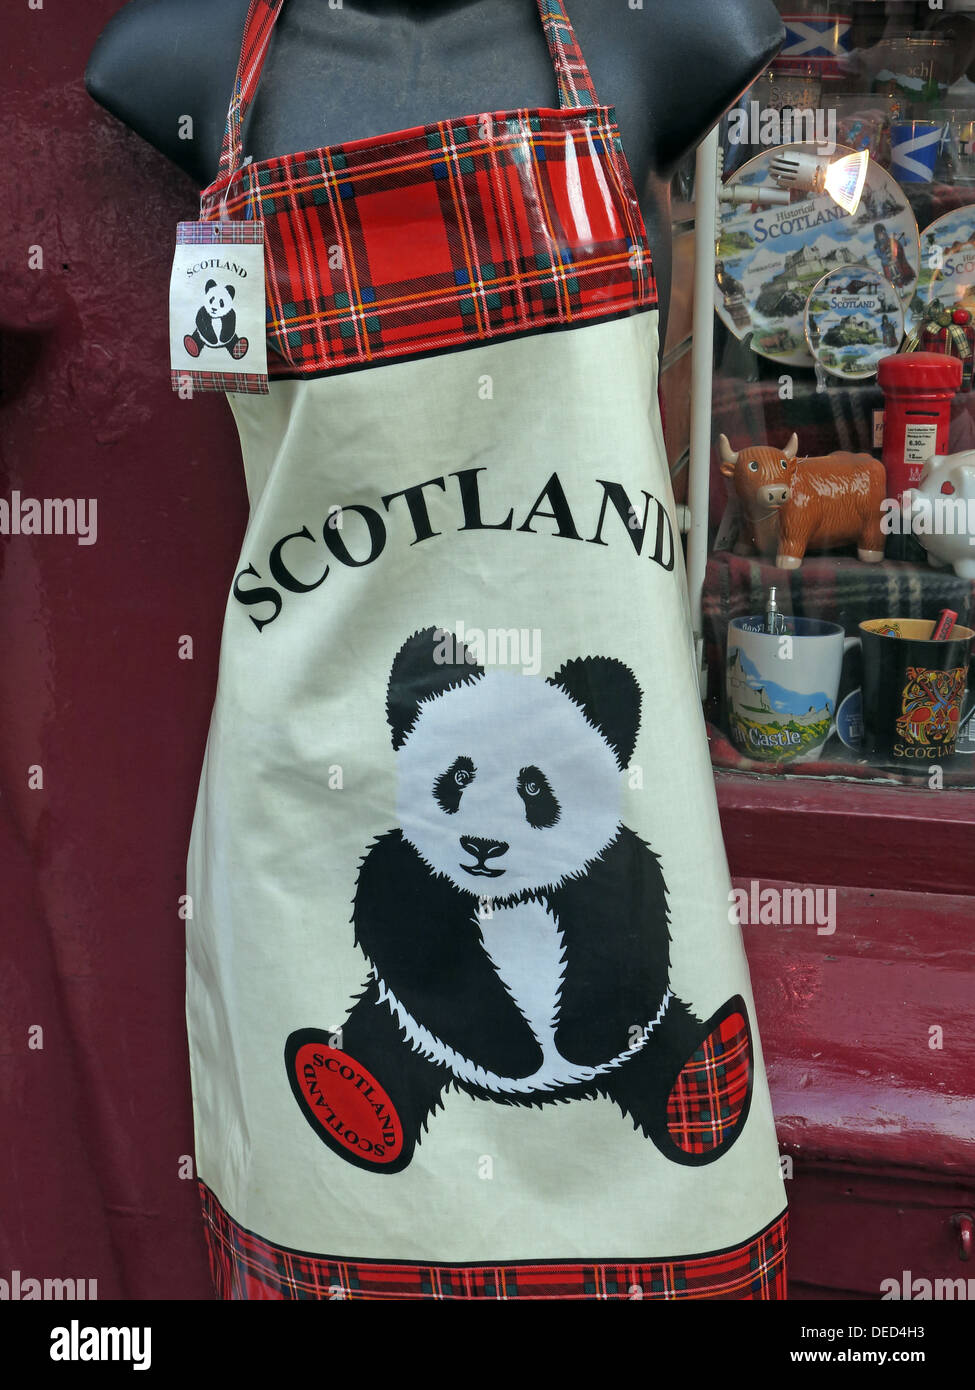 EH1,Scottish,Scot,scots,independance,independence,zoo,smock,kitchen,wear,strap,straps,tartan,PVC,Kitchen,Apron,Souvenir,pride,ideal,gift,gifts,shop,shops,cute,royal,mile,tat,crap,indian,shop,asian,Buy Pictures of,Buy Images Of,Gotonysmith